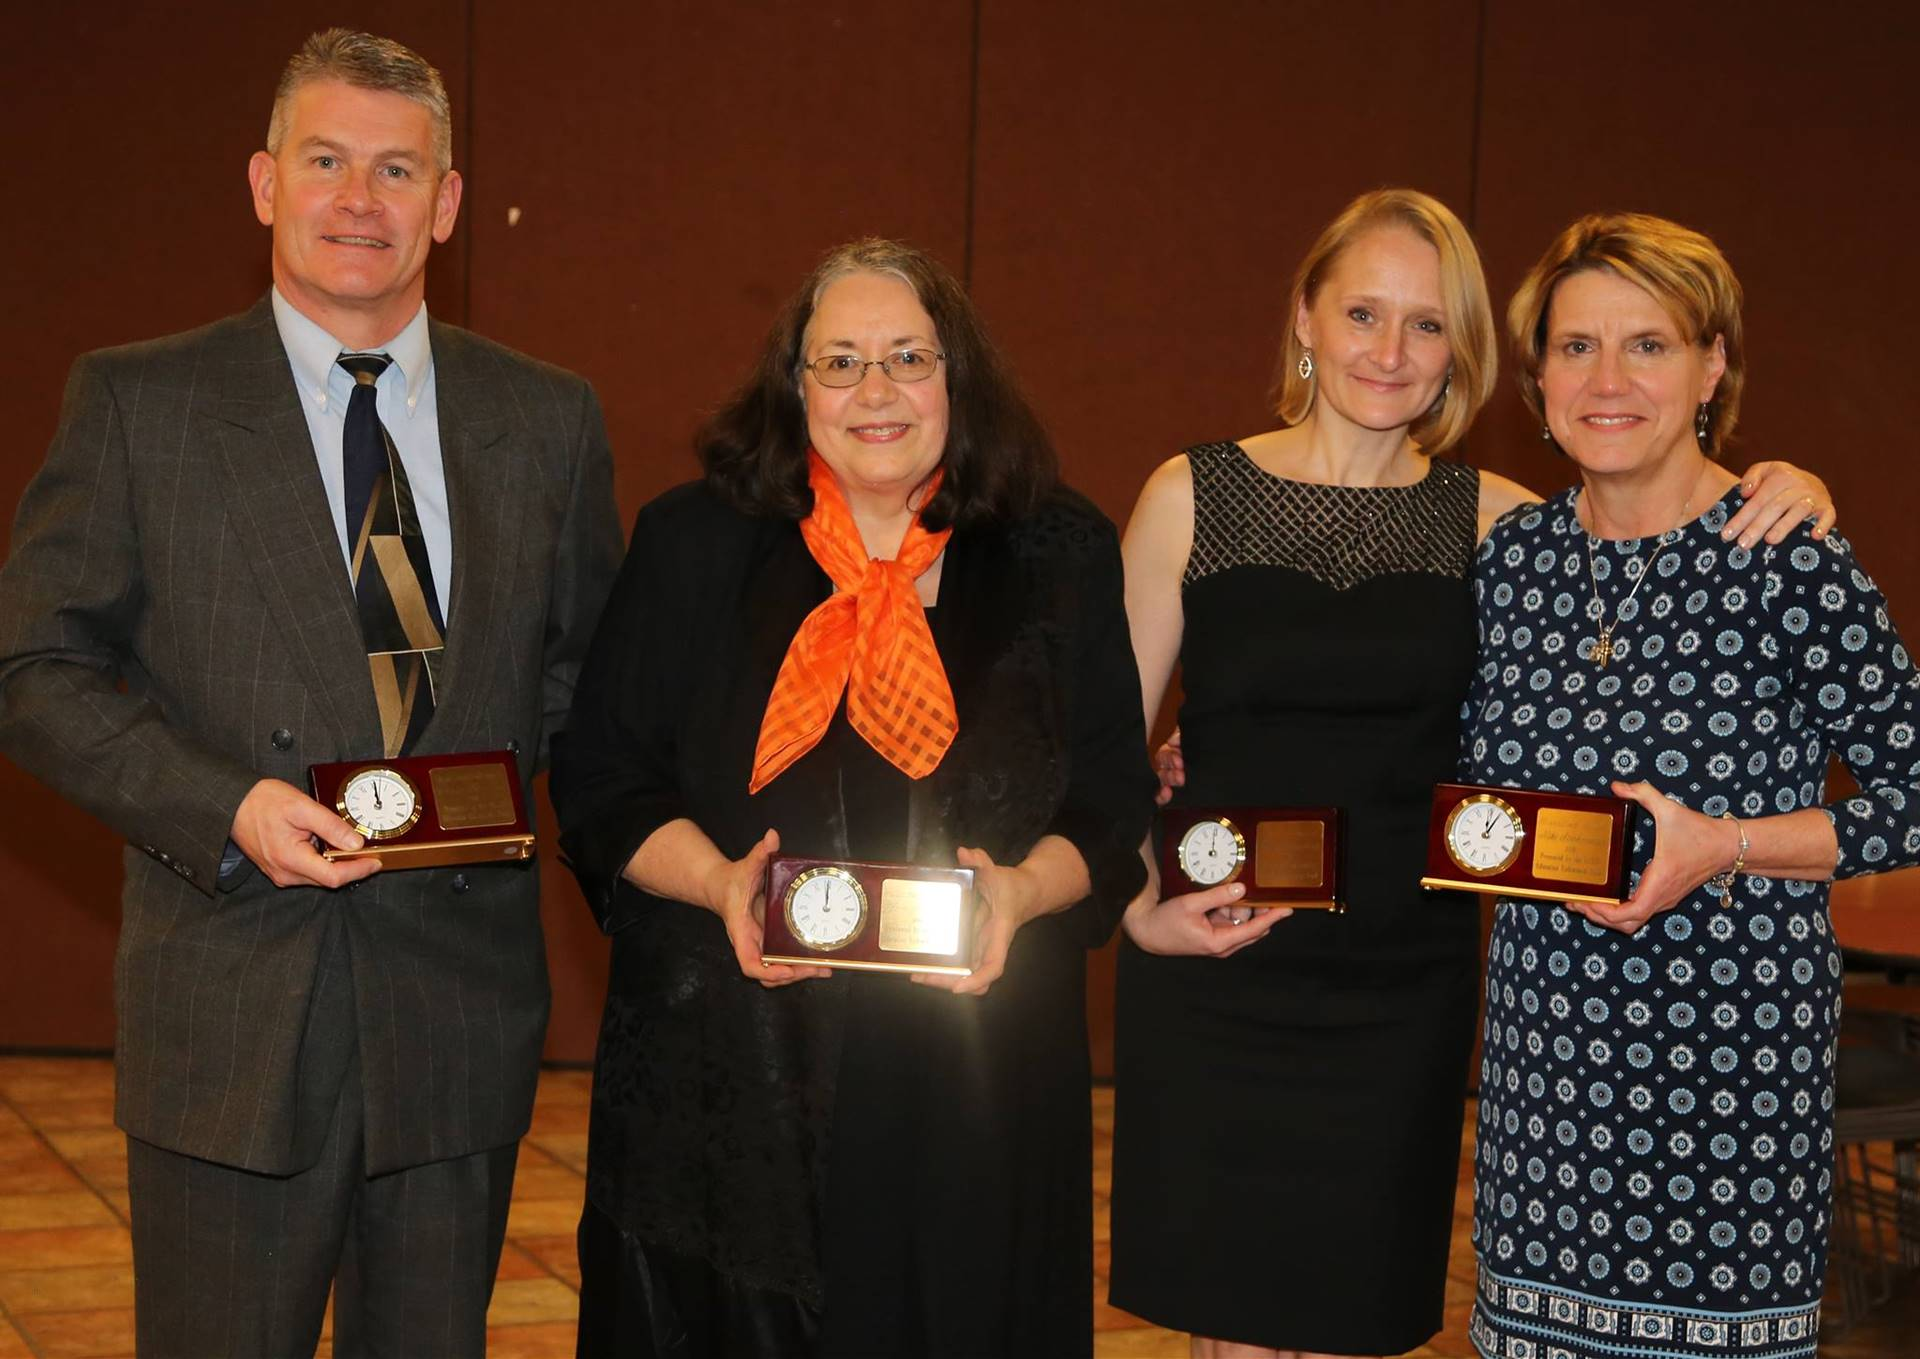 One man and three women holding awards